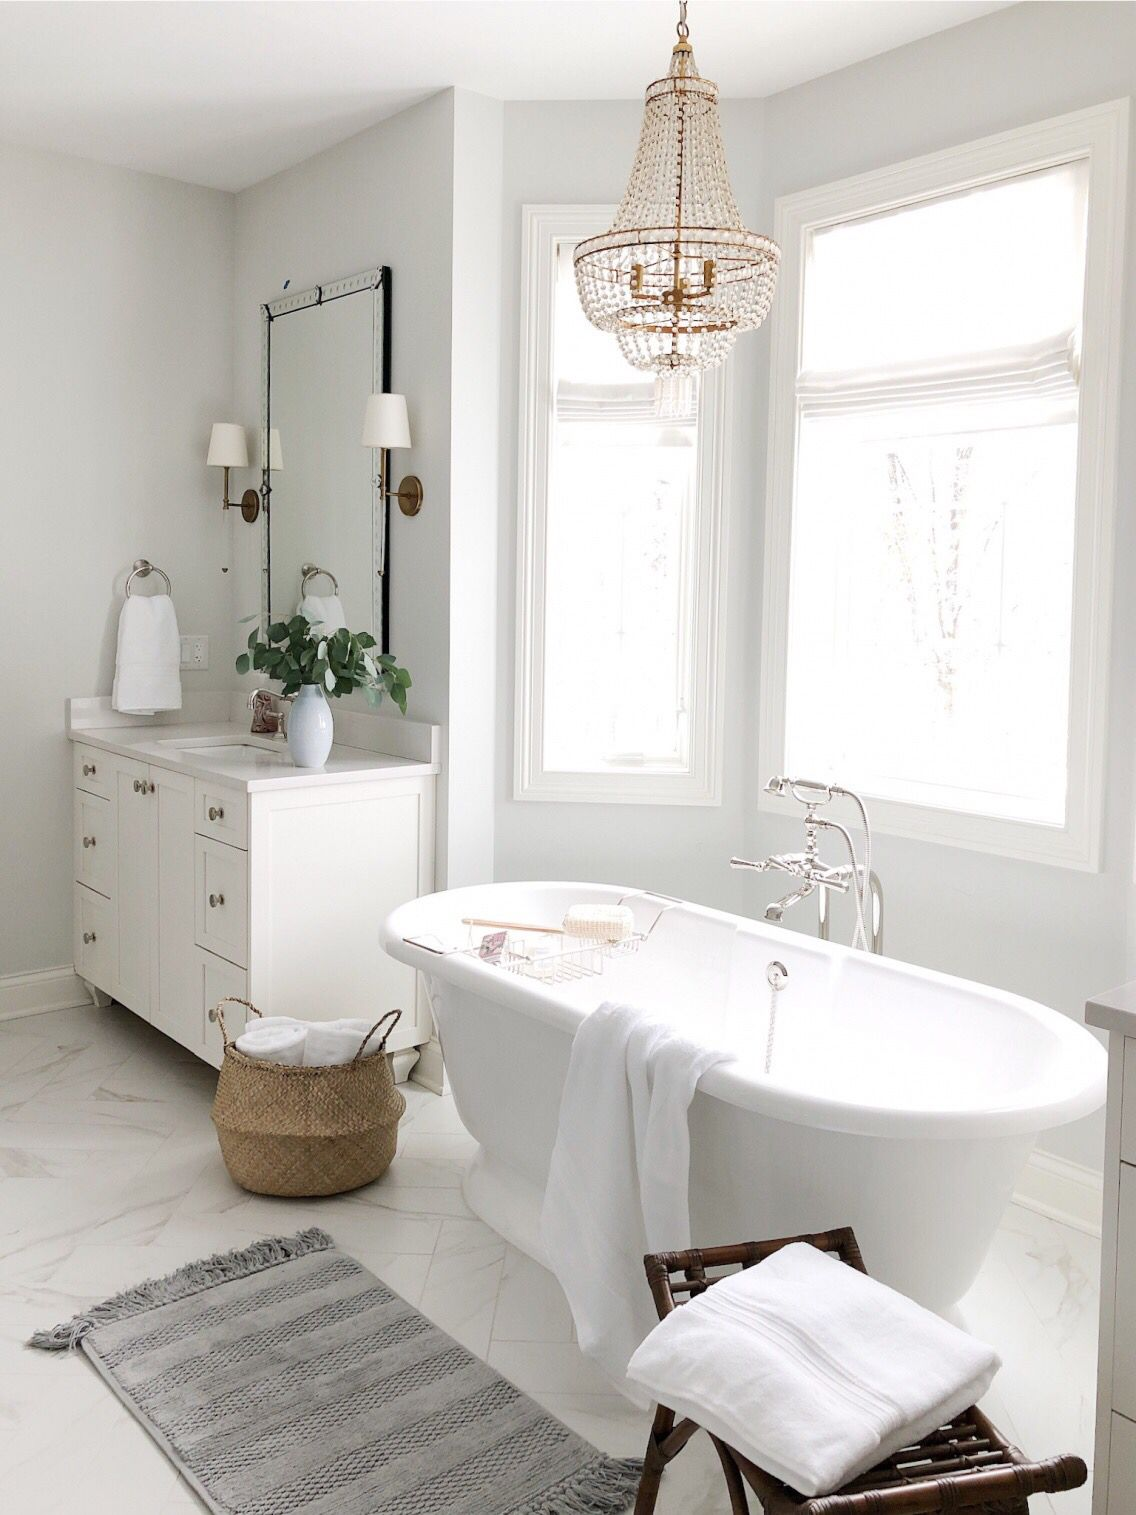 Bathroom Refresh With Pottery Barn Bathroom Remodel Master